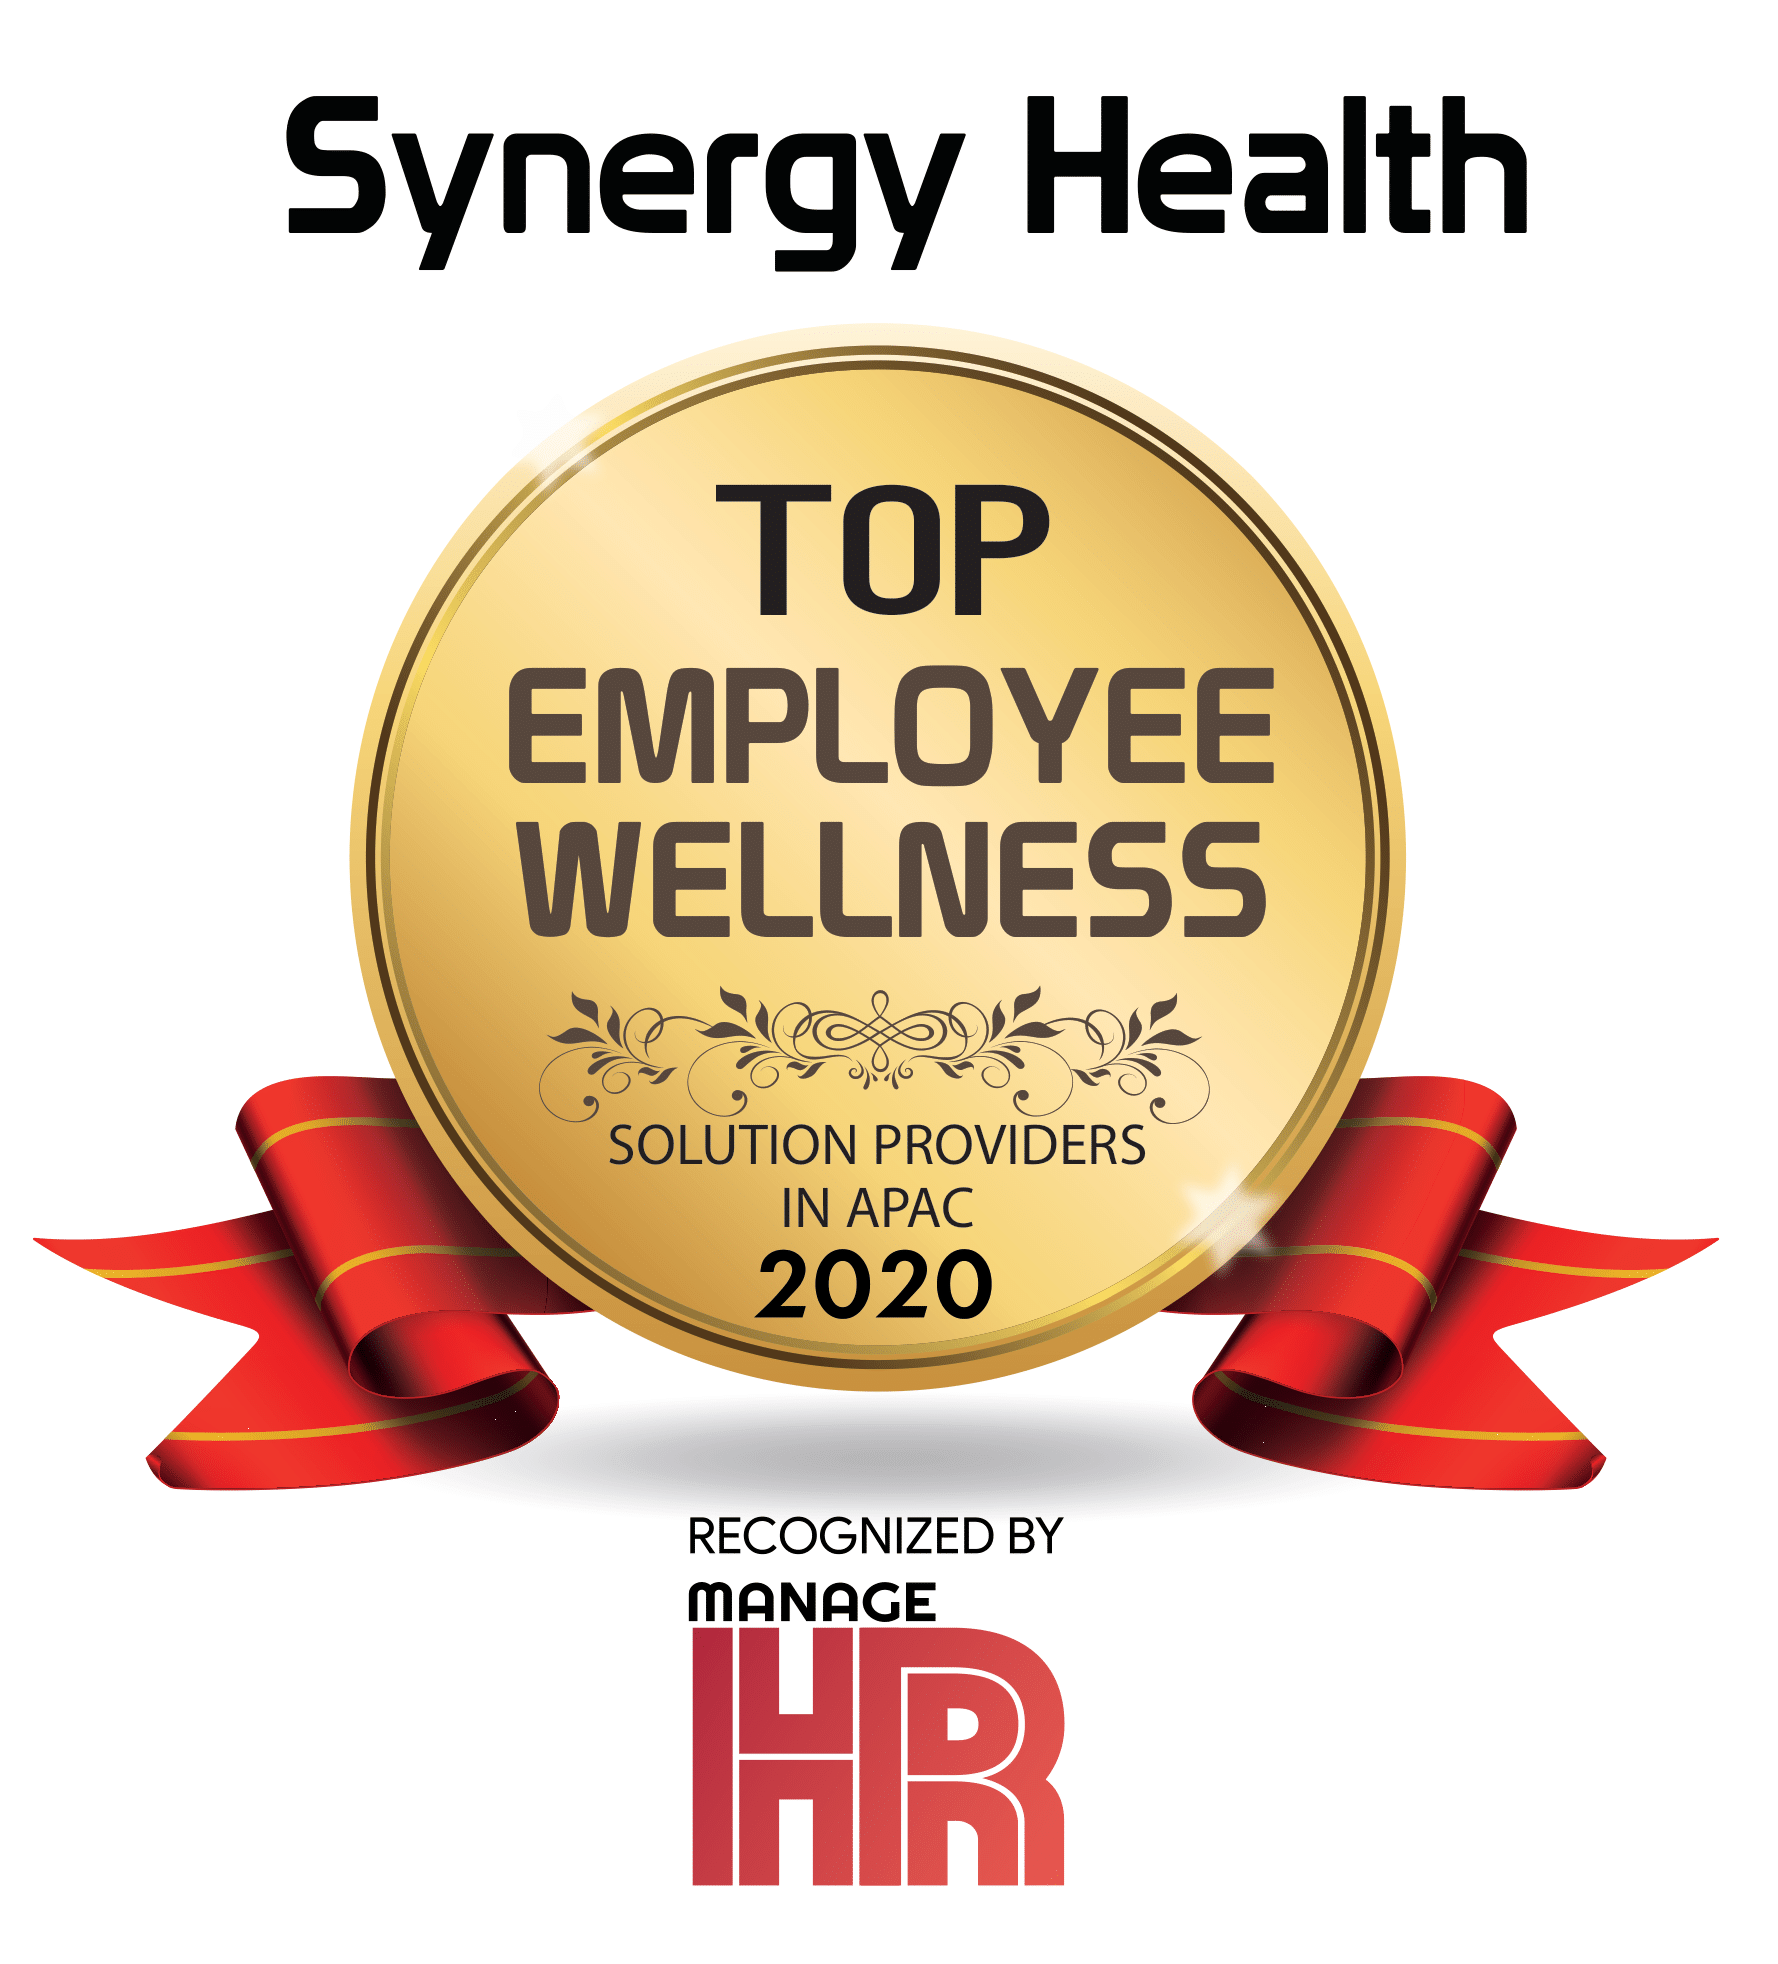 Synergy Health Top Employee Wellness Provider